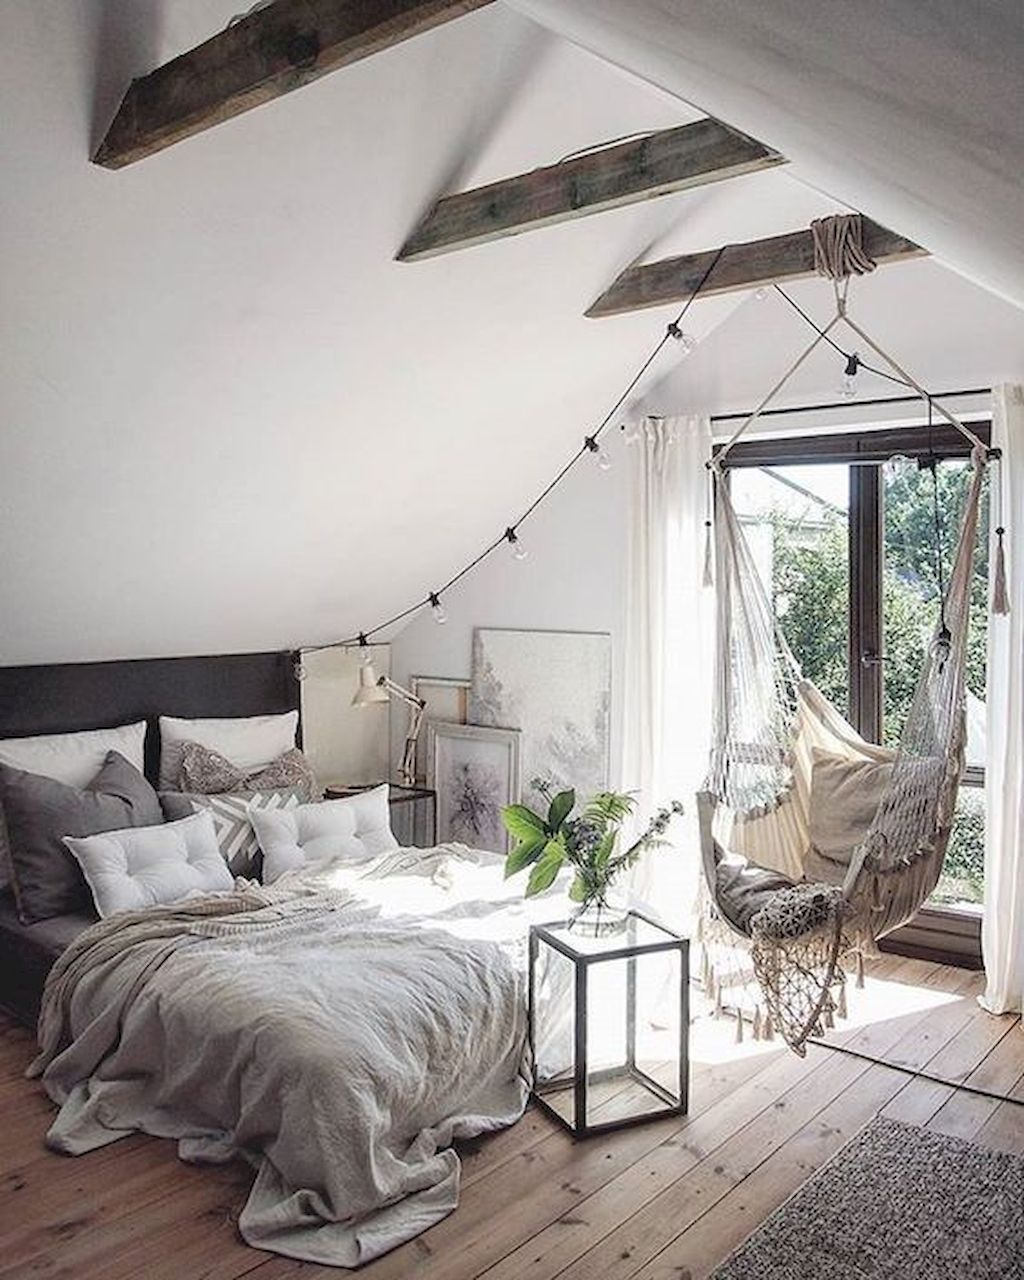 50 Incredible Apartment Bedroom Decor Ideas With Boho Style ...